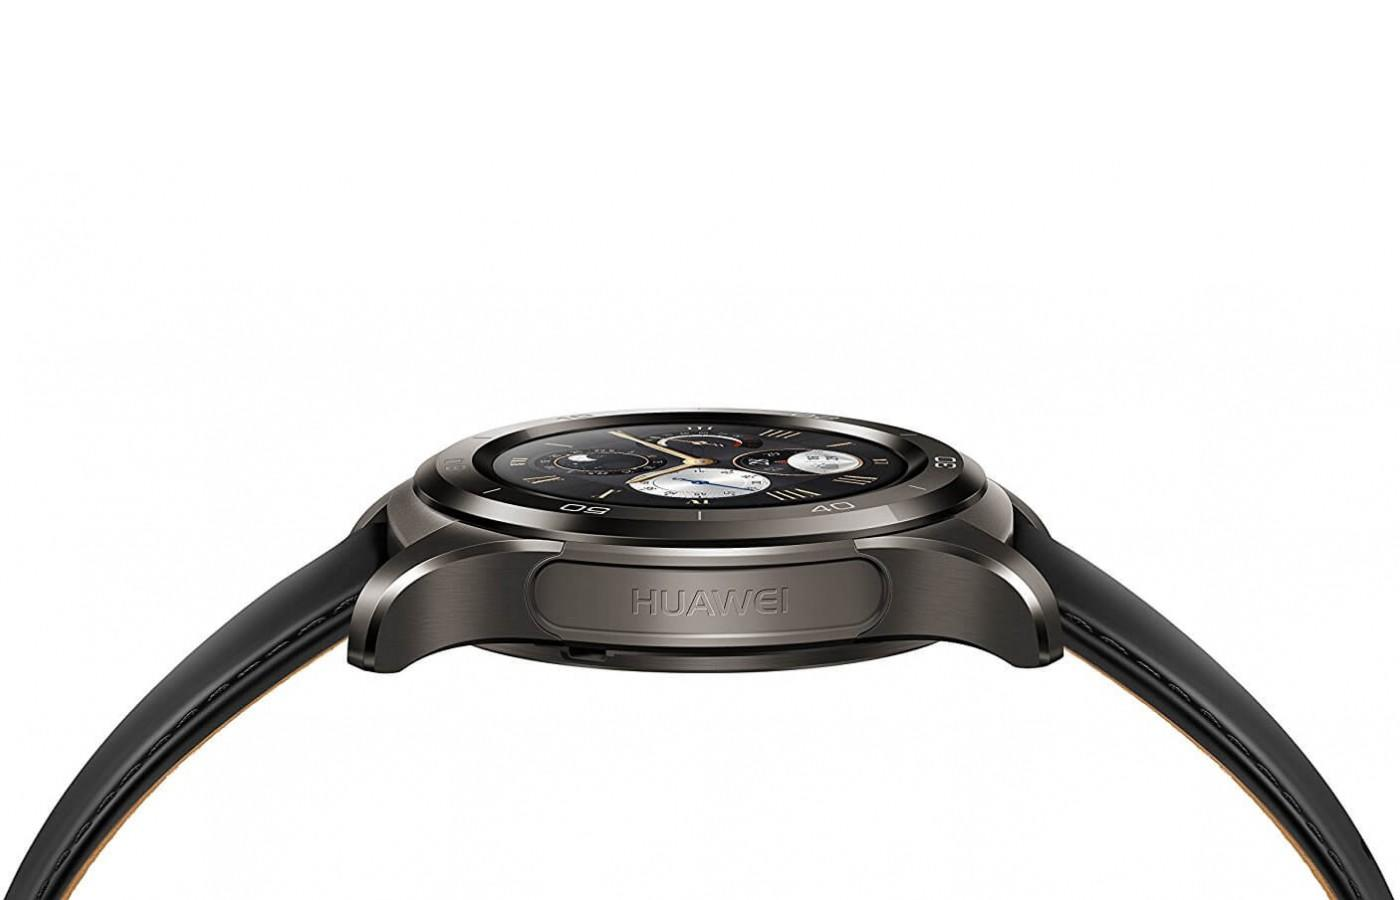 huawei watch 2 classic. the huawei watch 2 classic has a two-layer strap c